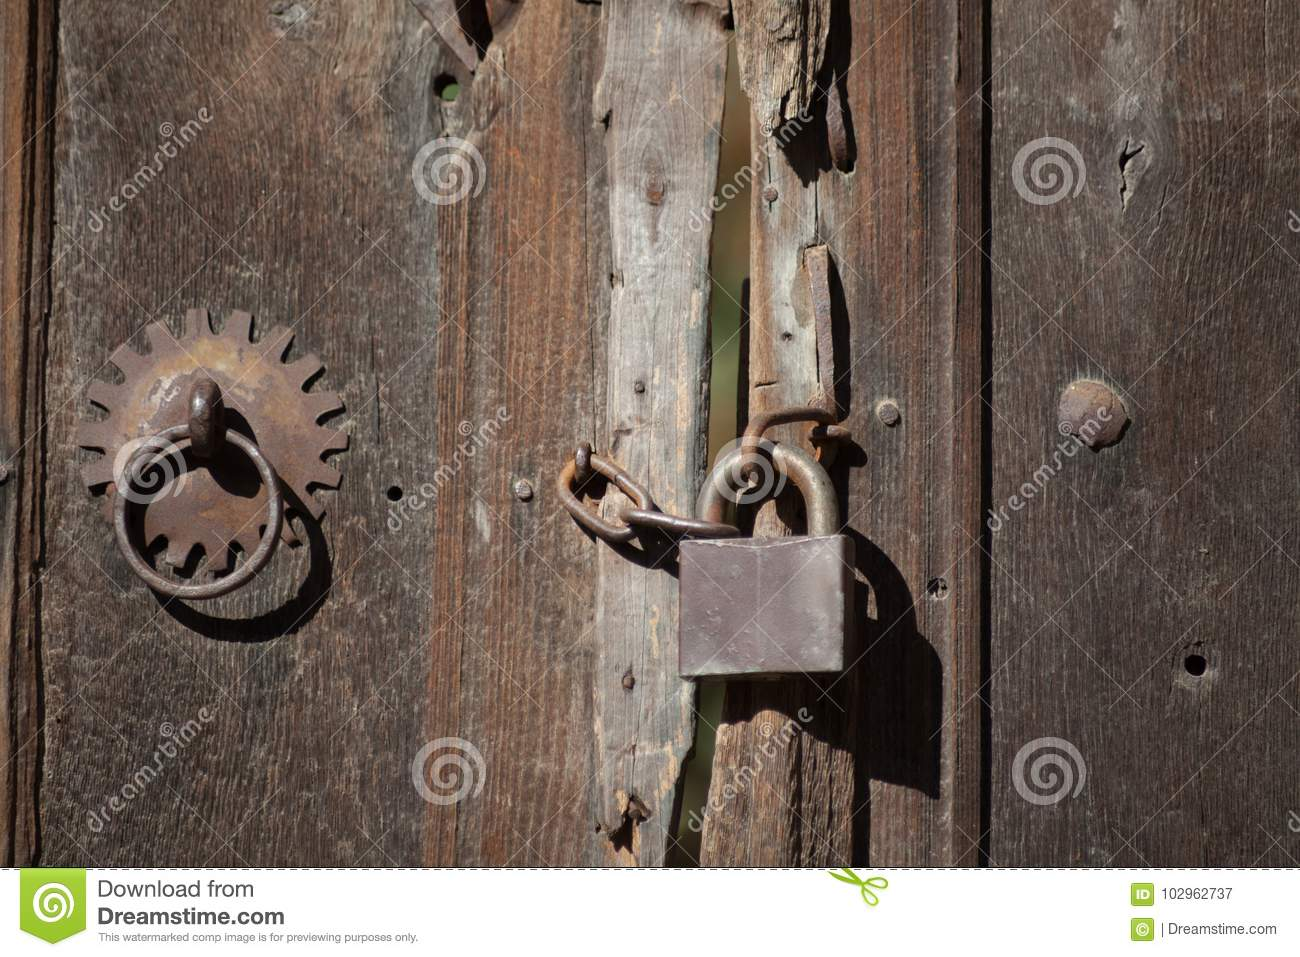 old locks and doors with latches stock image image of close